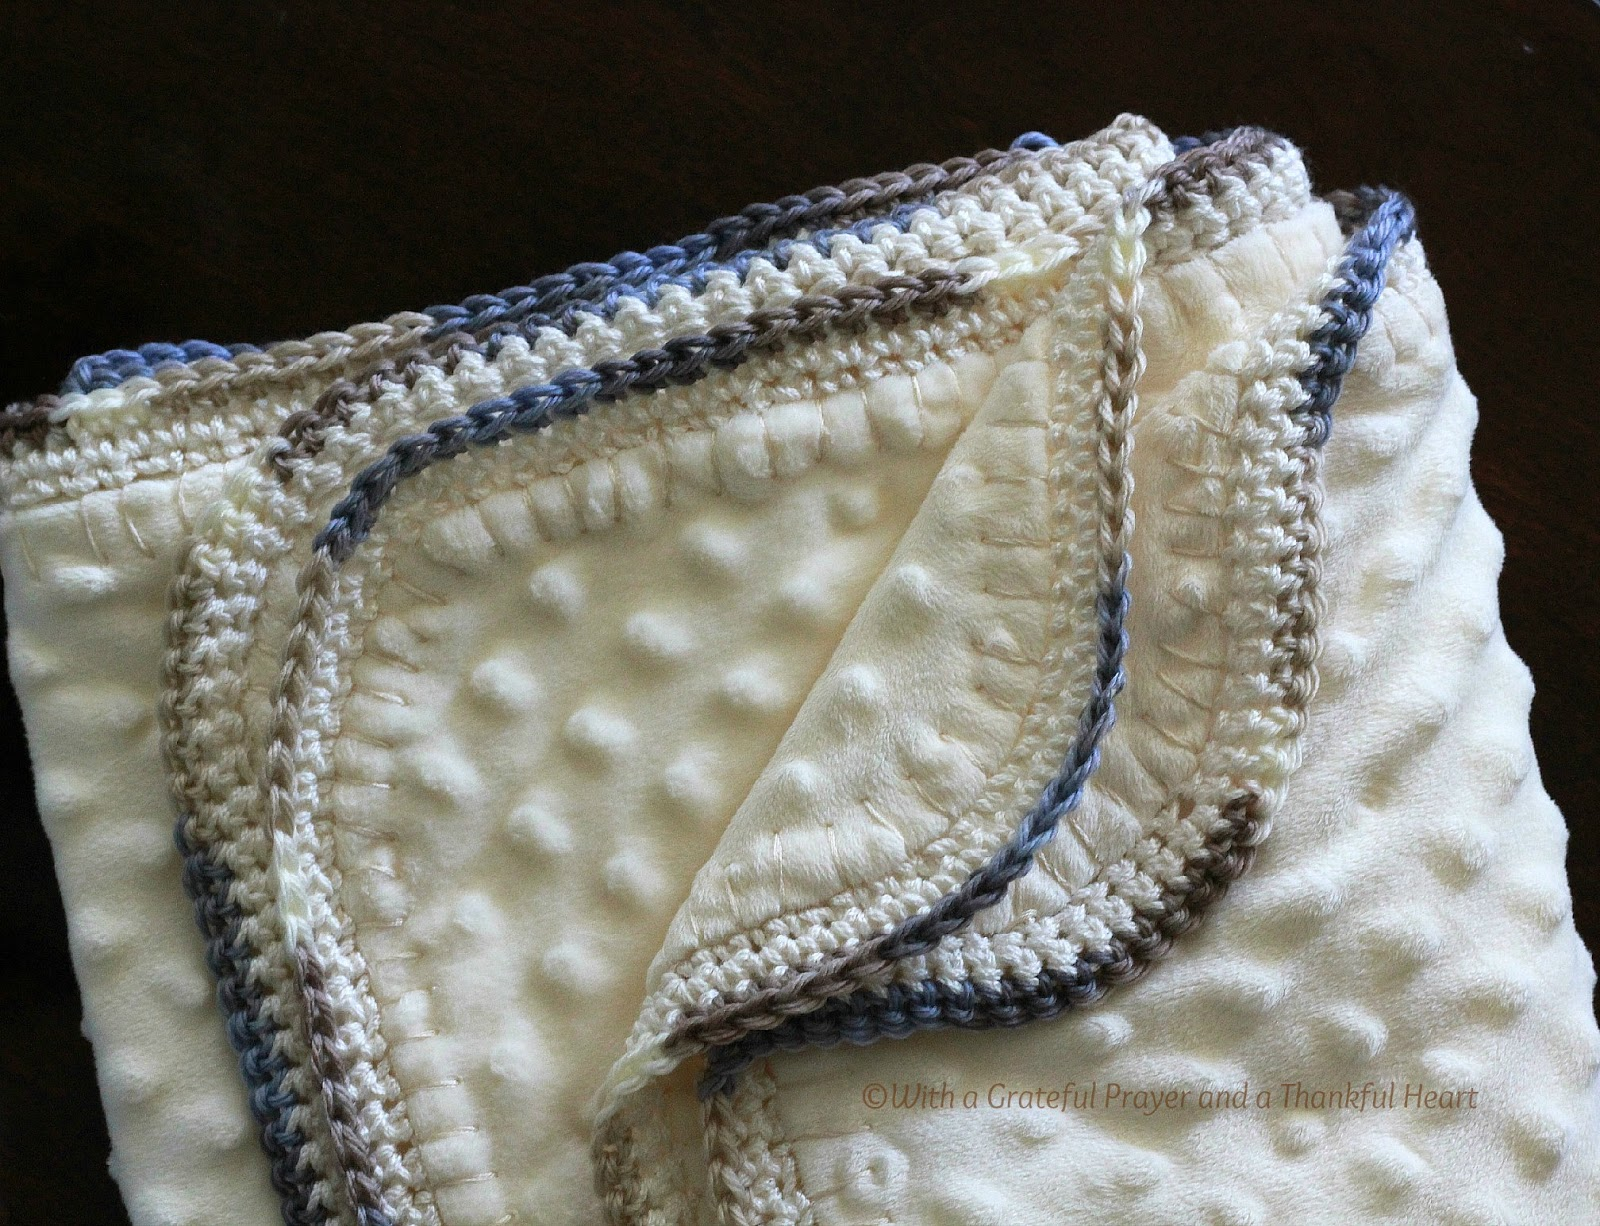 Crocheting Edging On Fleece : crochet+edging+on+fleece+baby+blanket_6884+wm.jpg